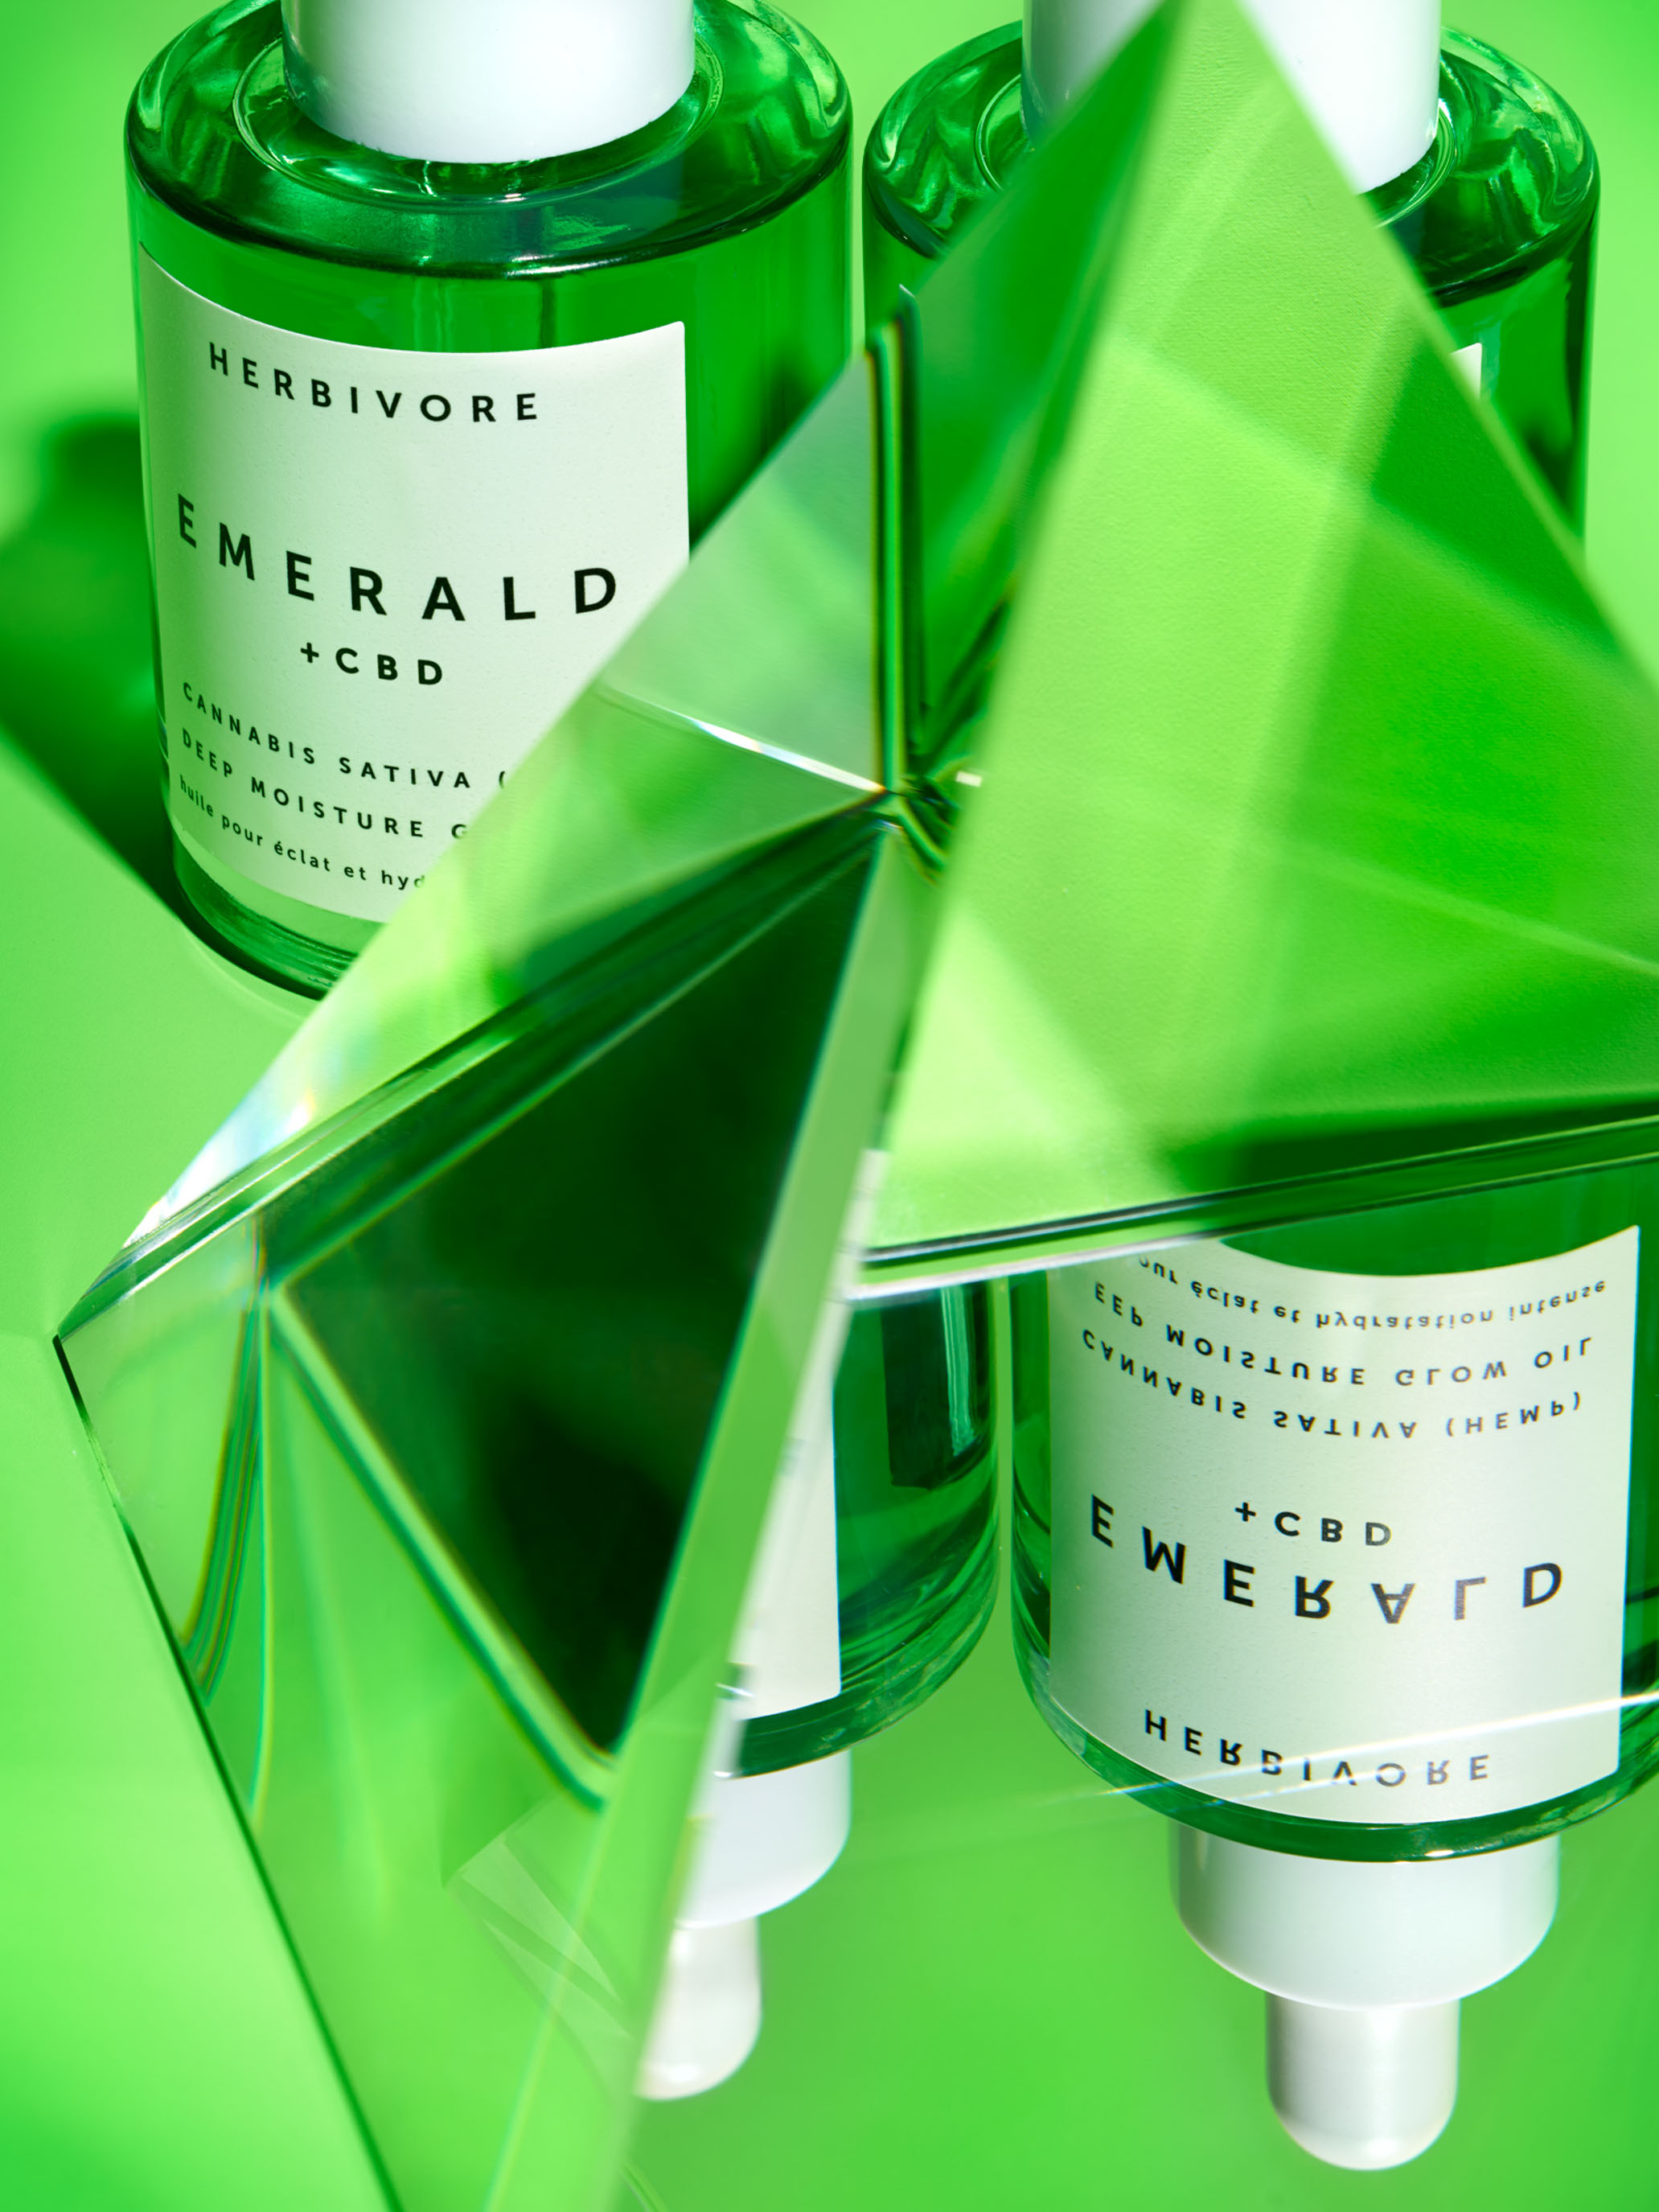 STAN Herbivore Emerald CBD Editorial Still Life with Prism